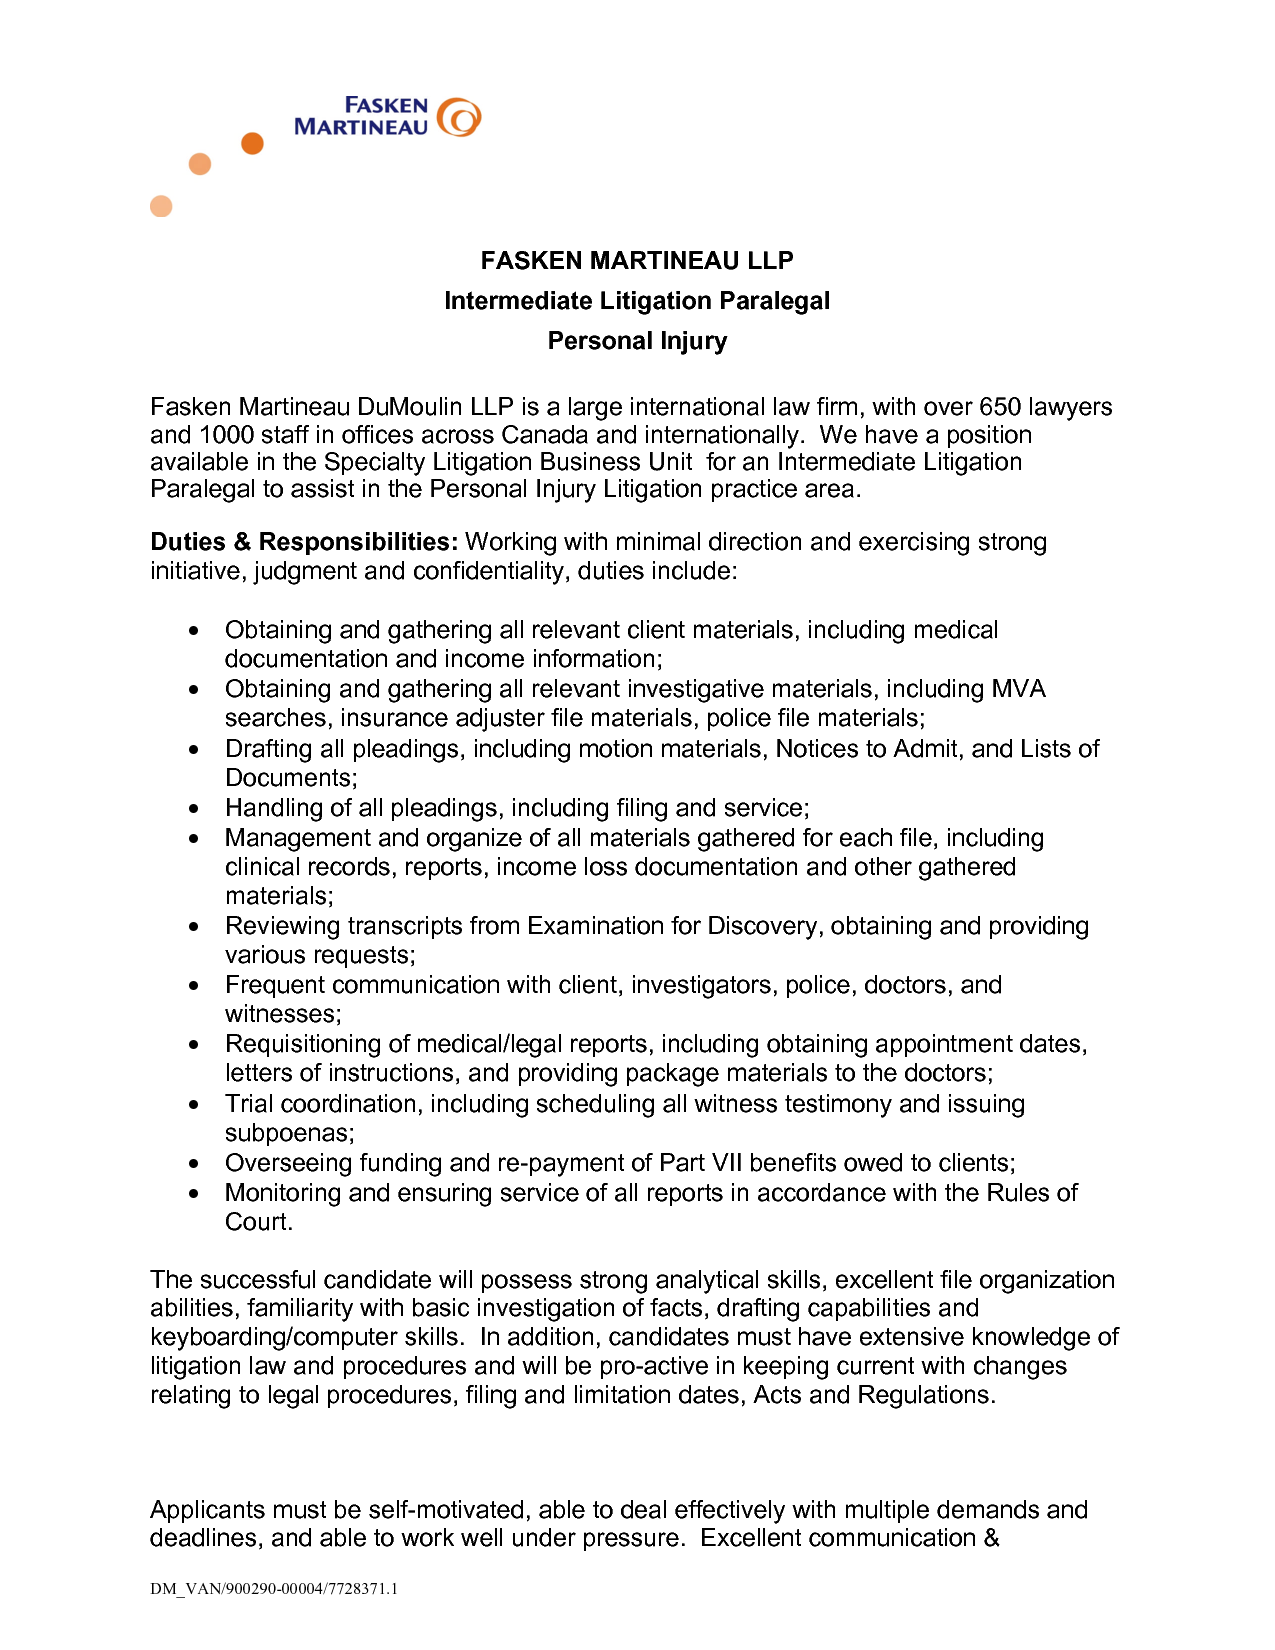 personal injury lawyer resume sample Intermediate Litigation Paralegal